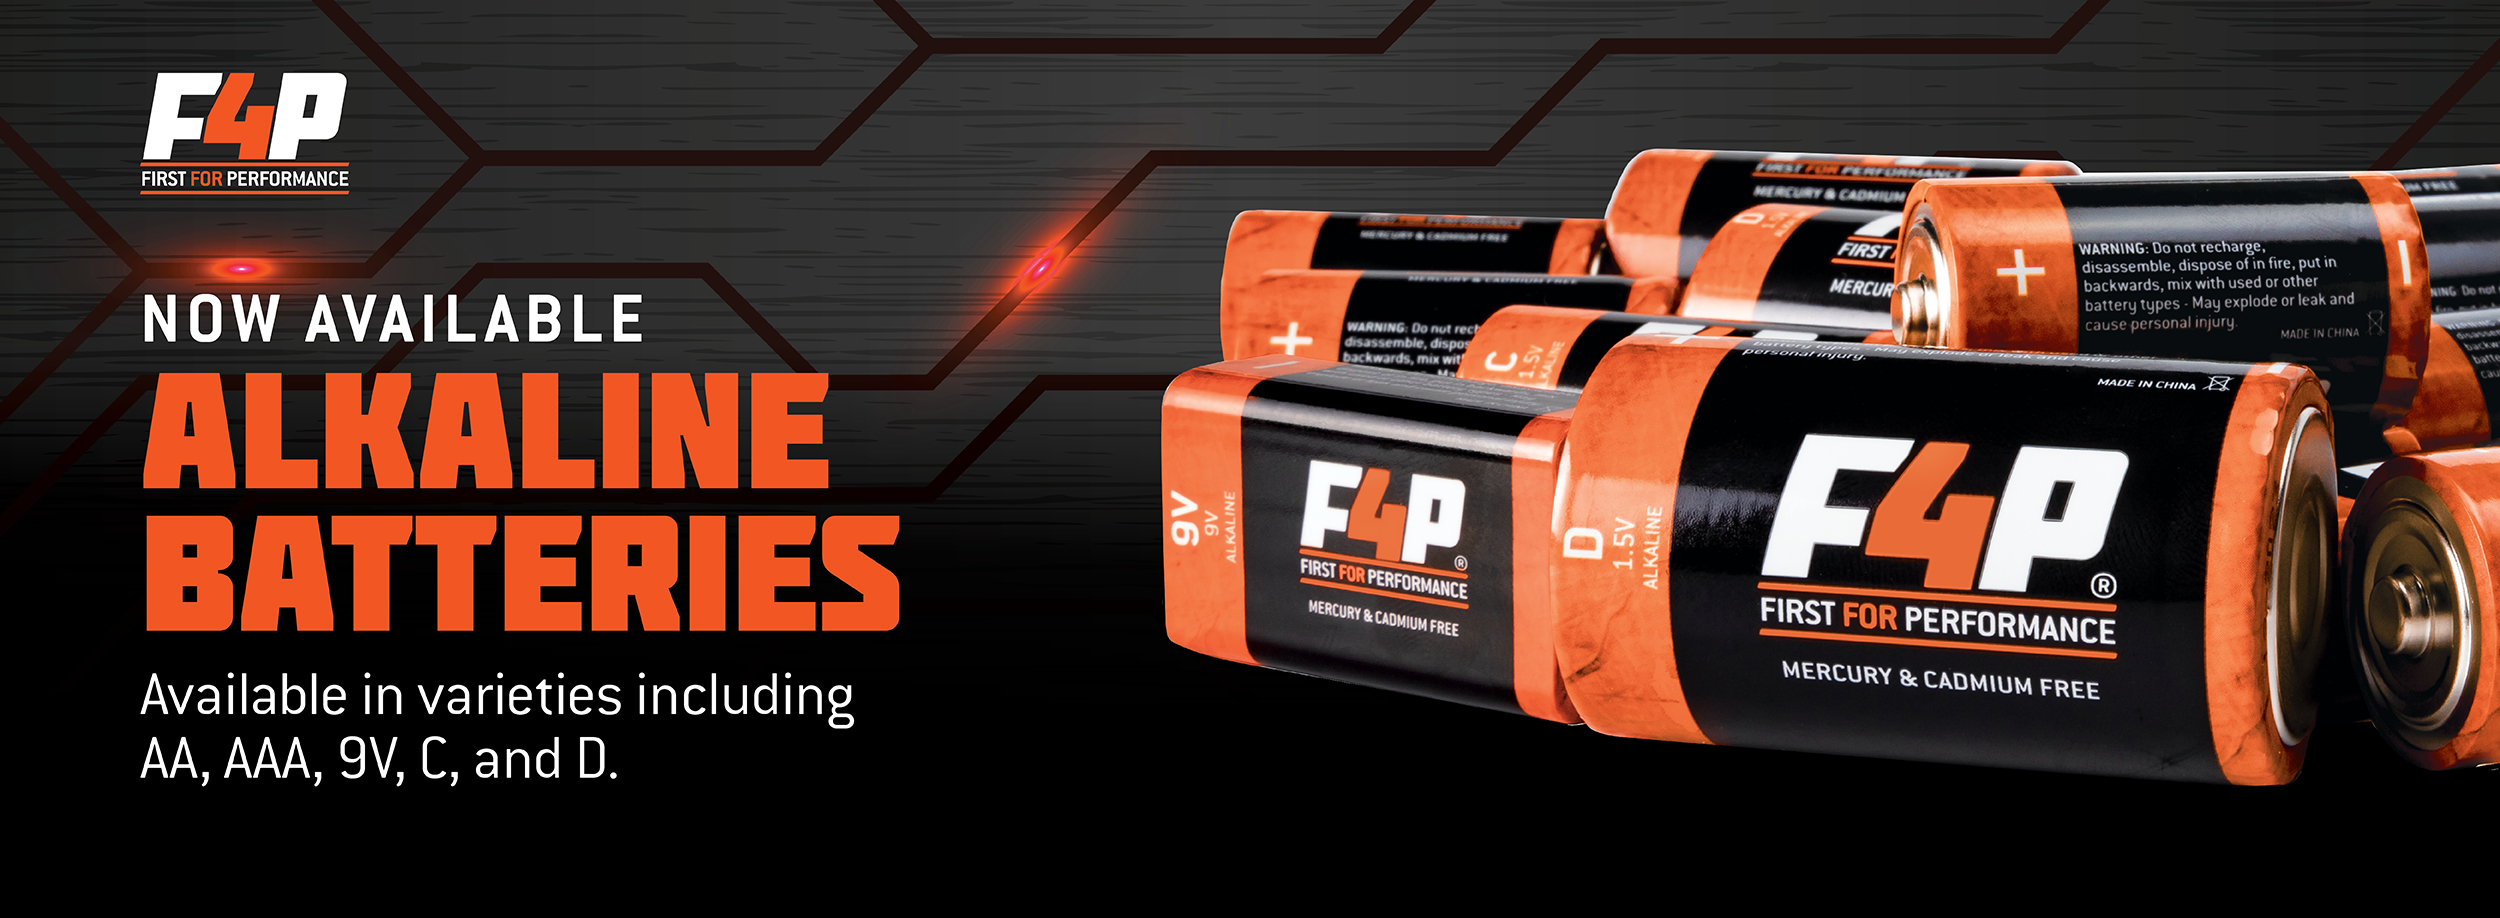 F4P Alkaline Batteries Now Available